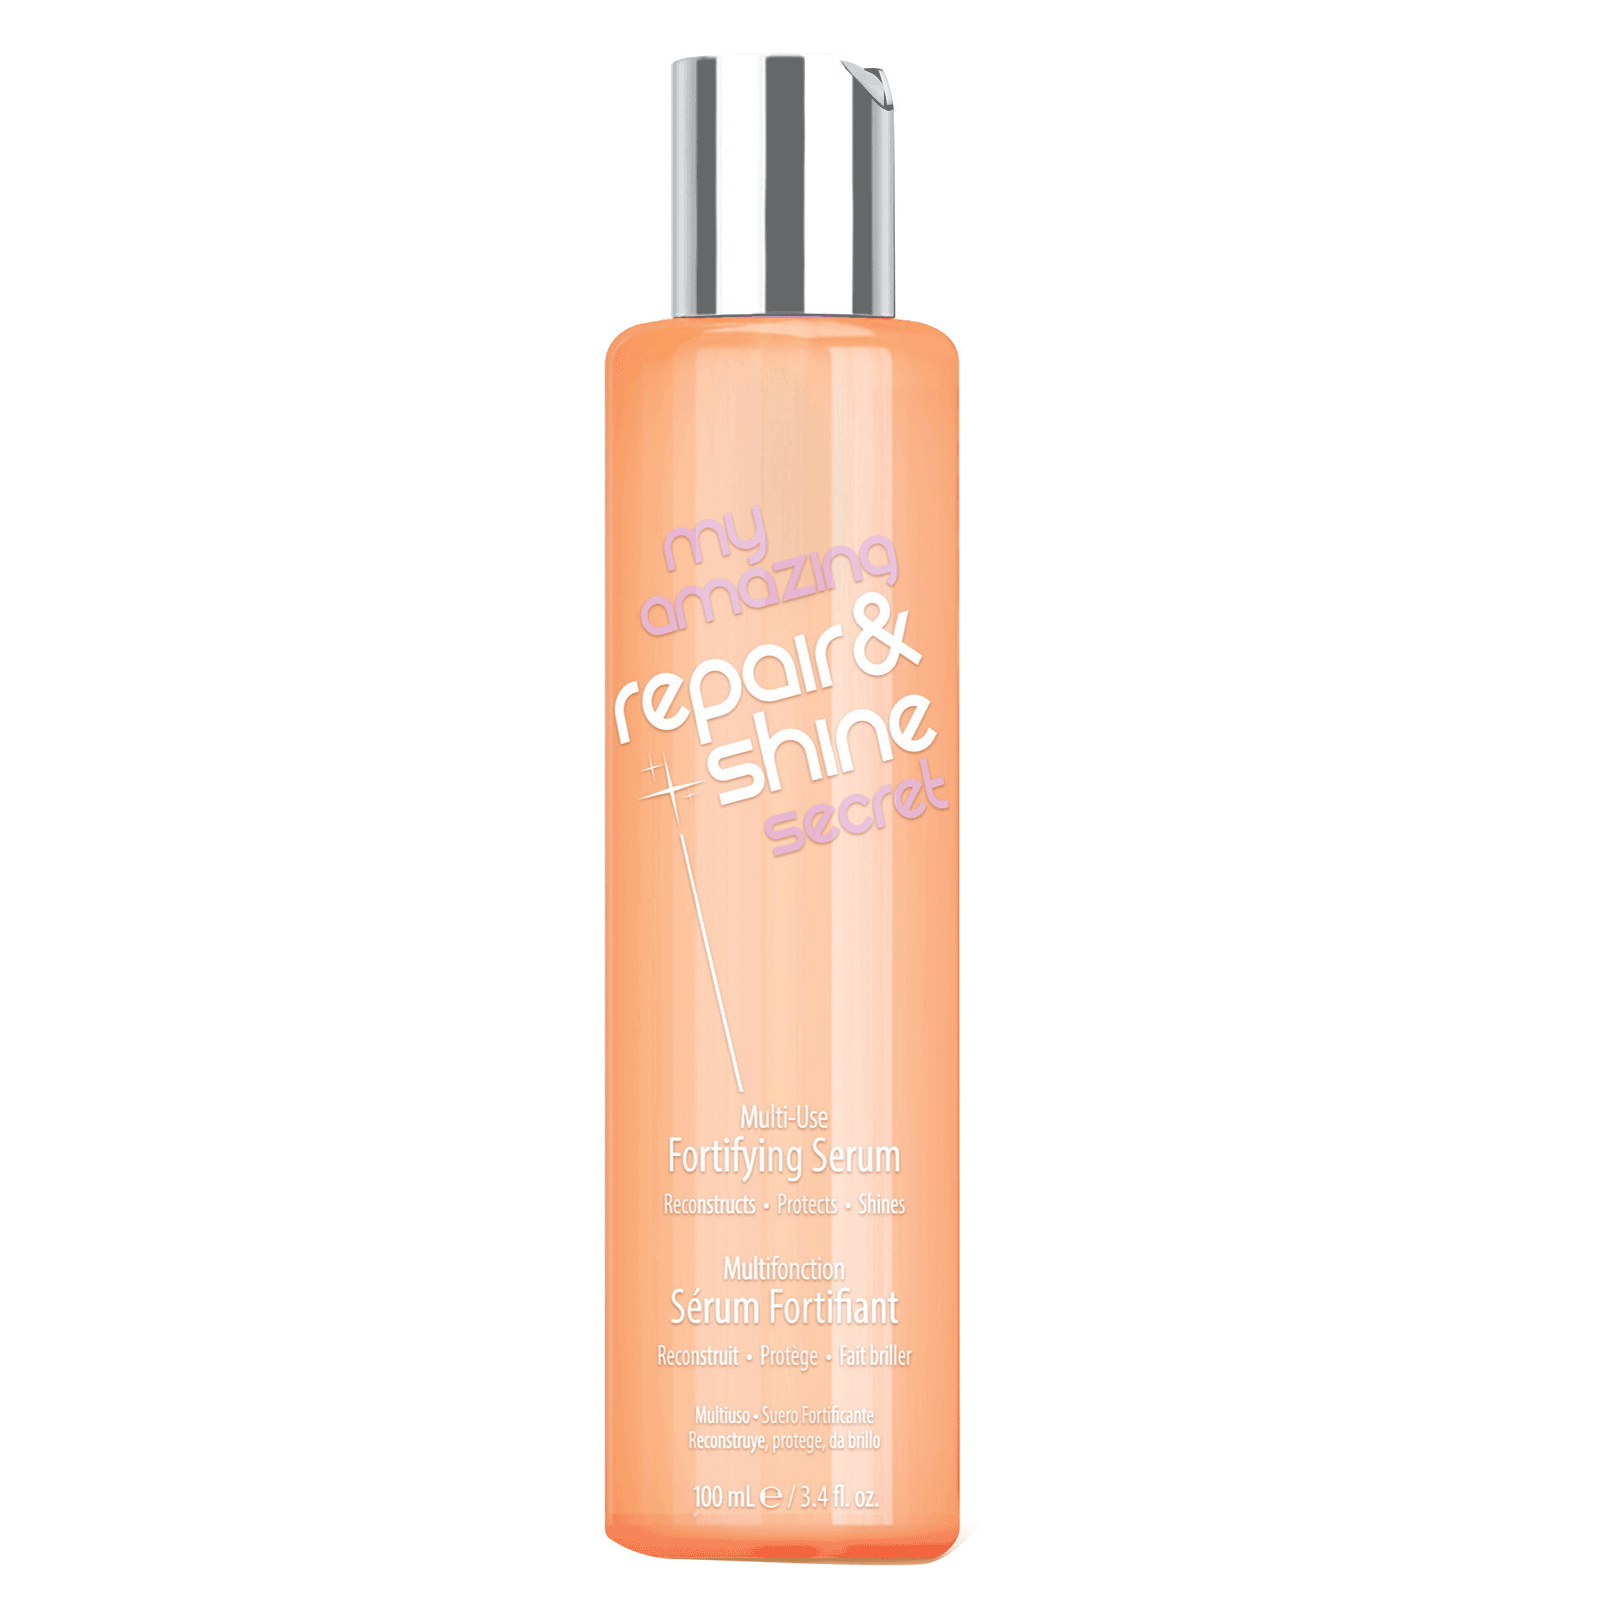 Repair & Shine Secret